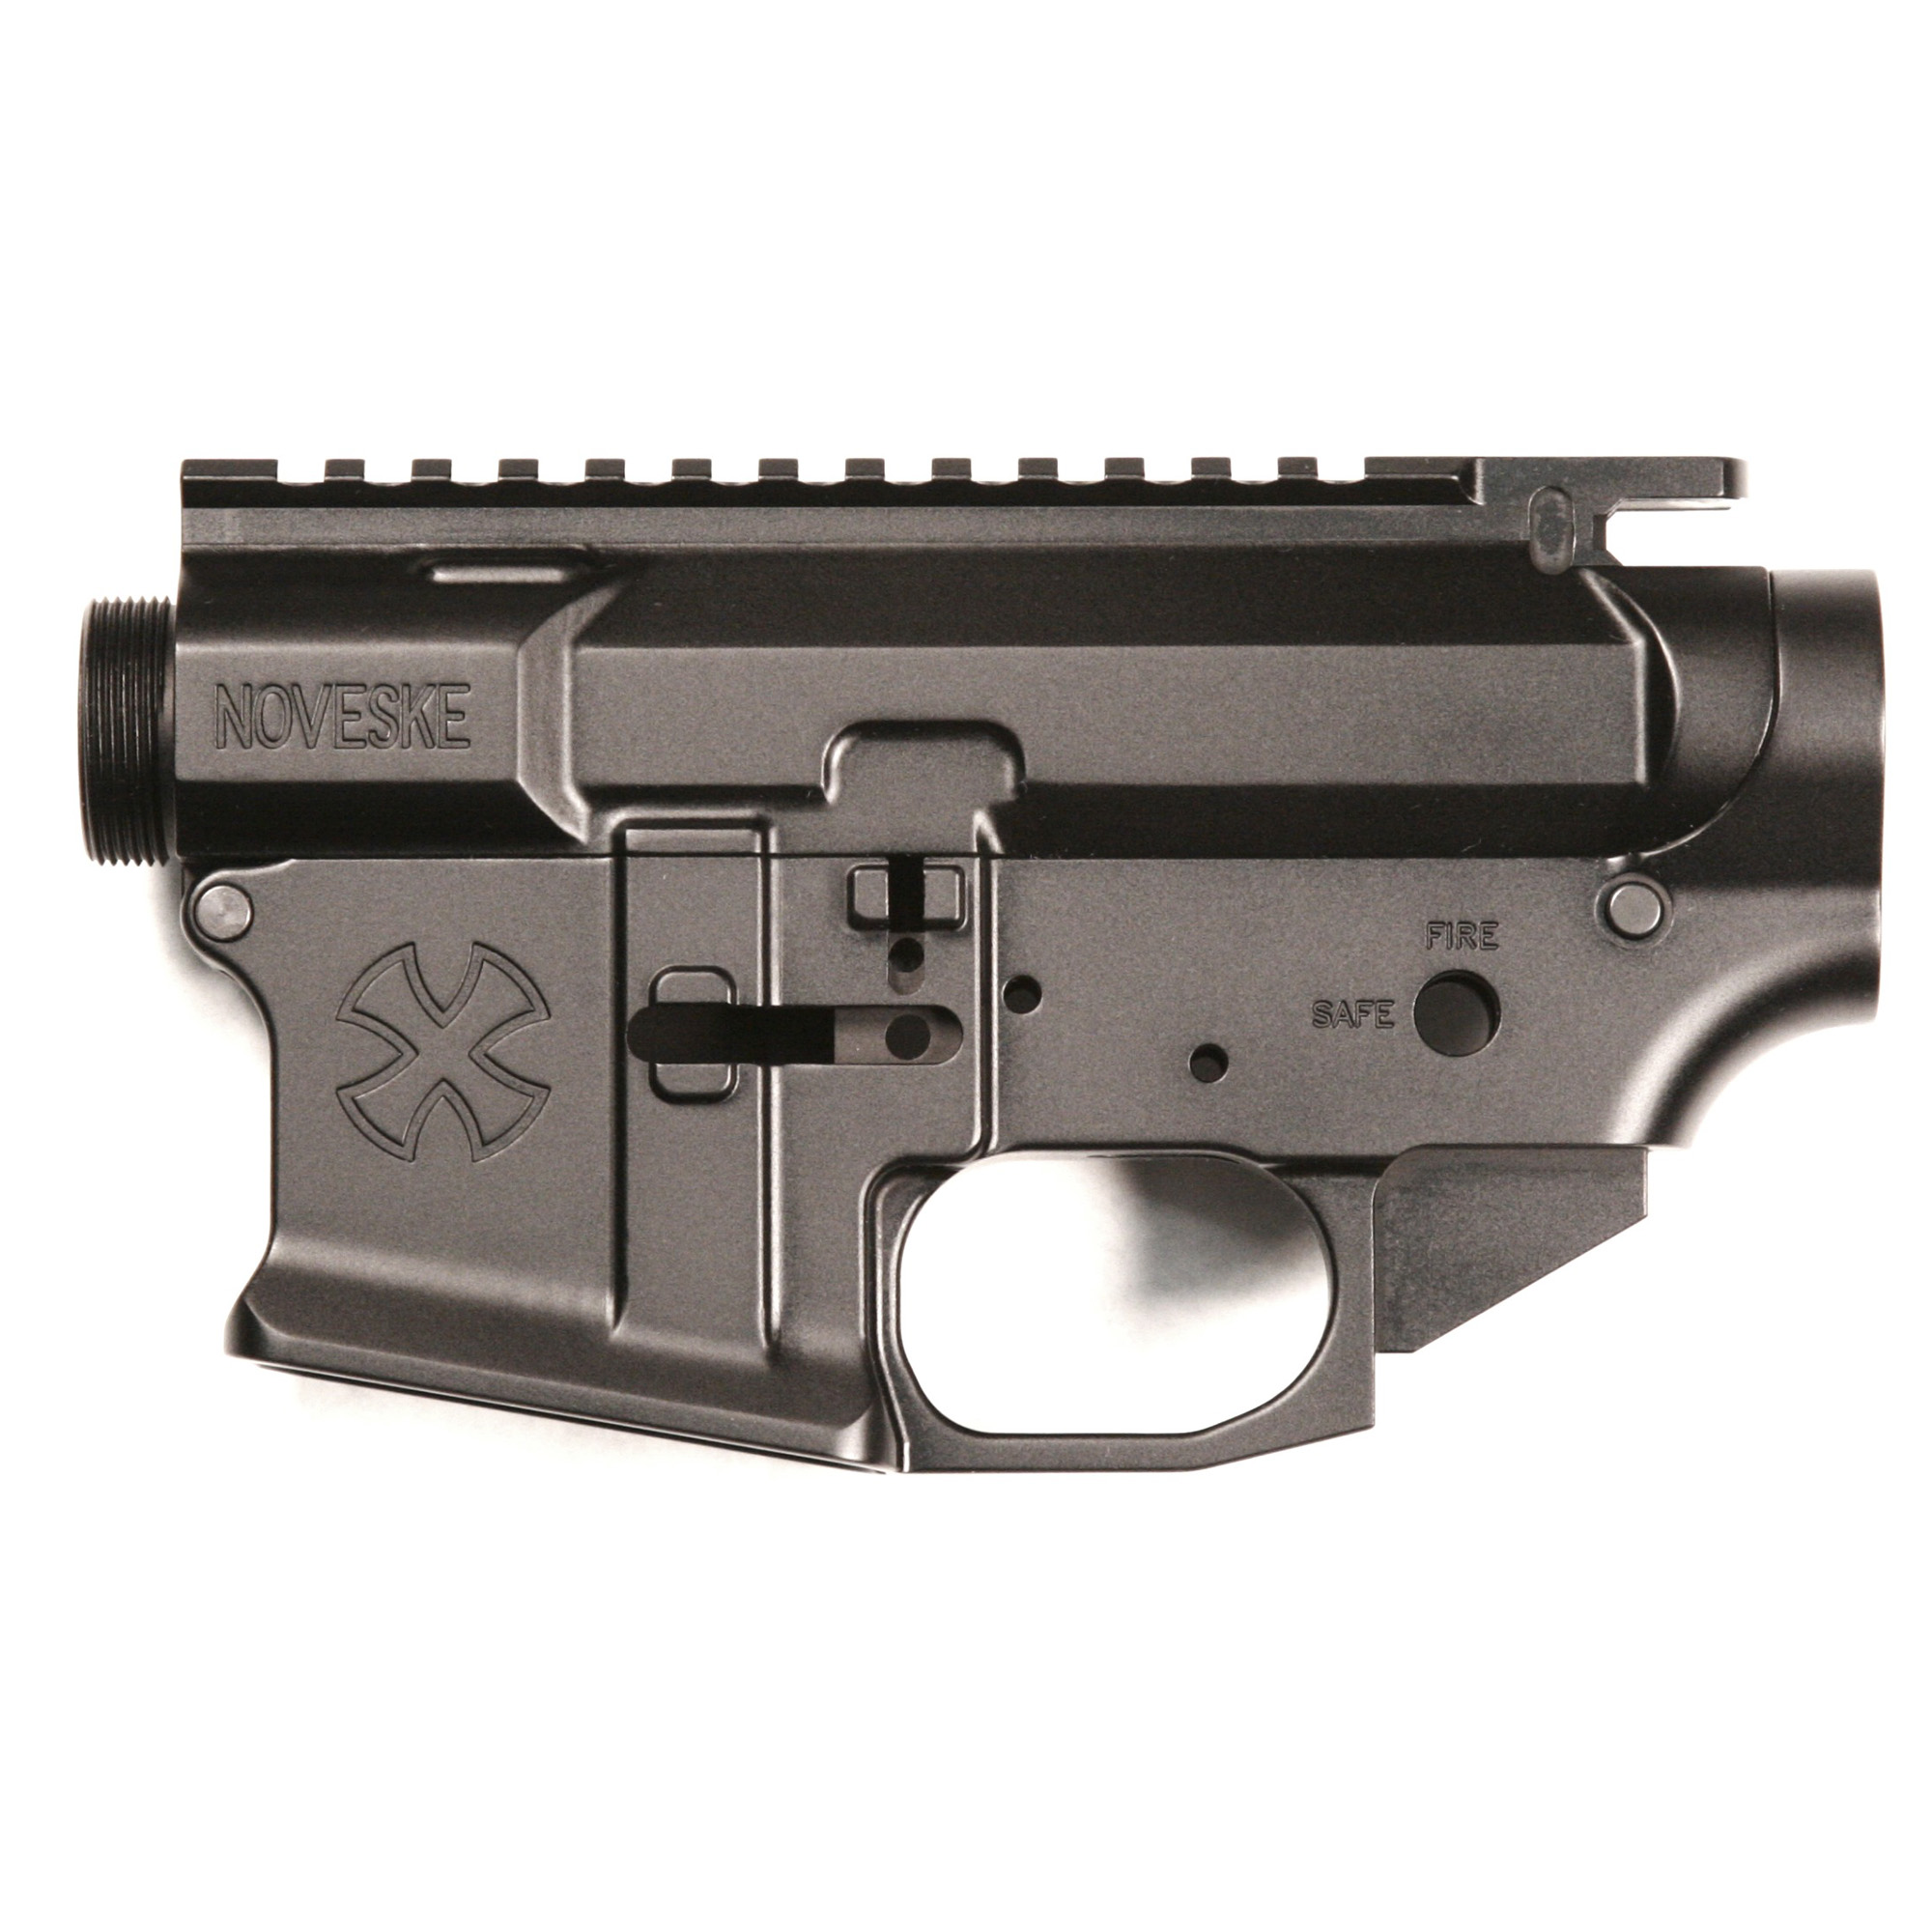 Noveske Upper/lower Set Gen3 Blk